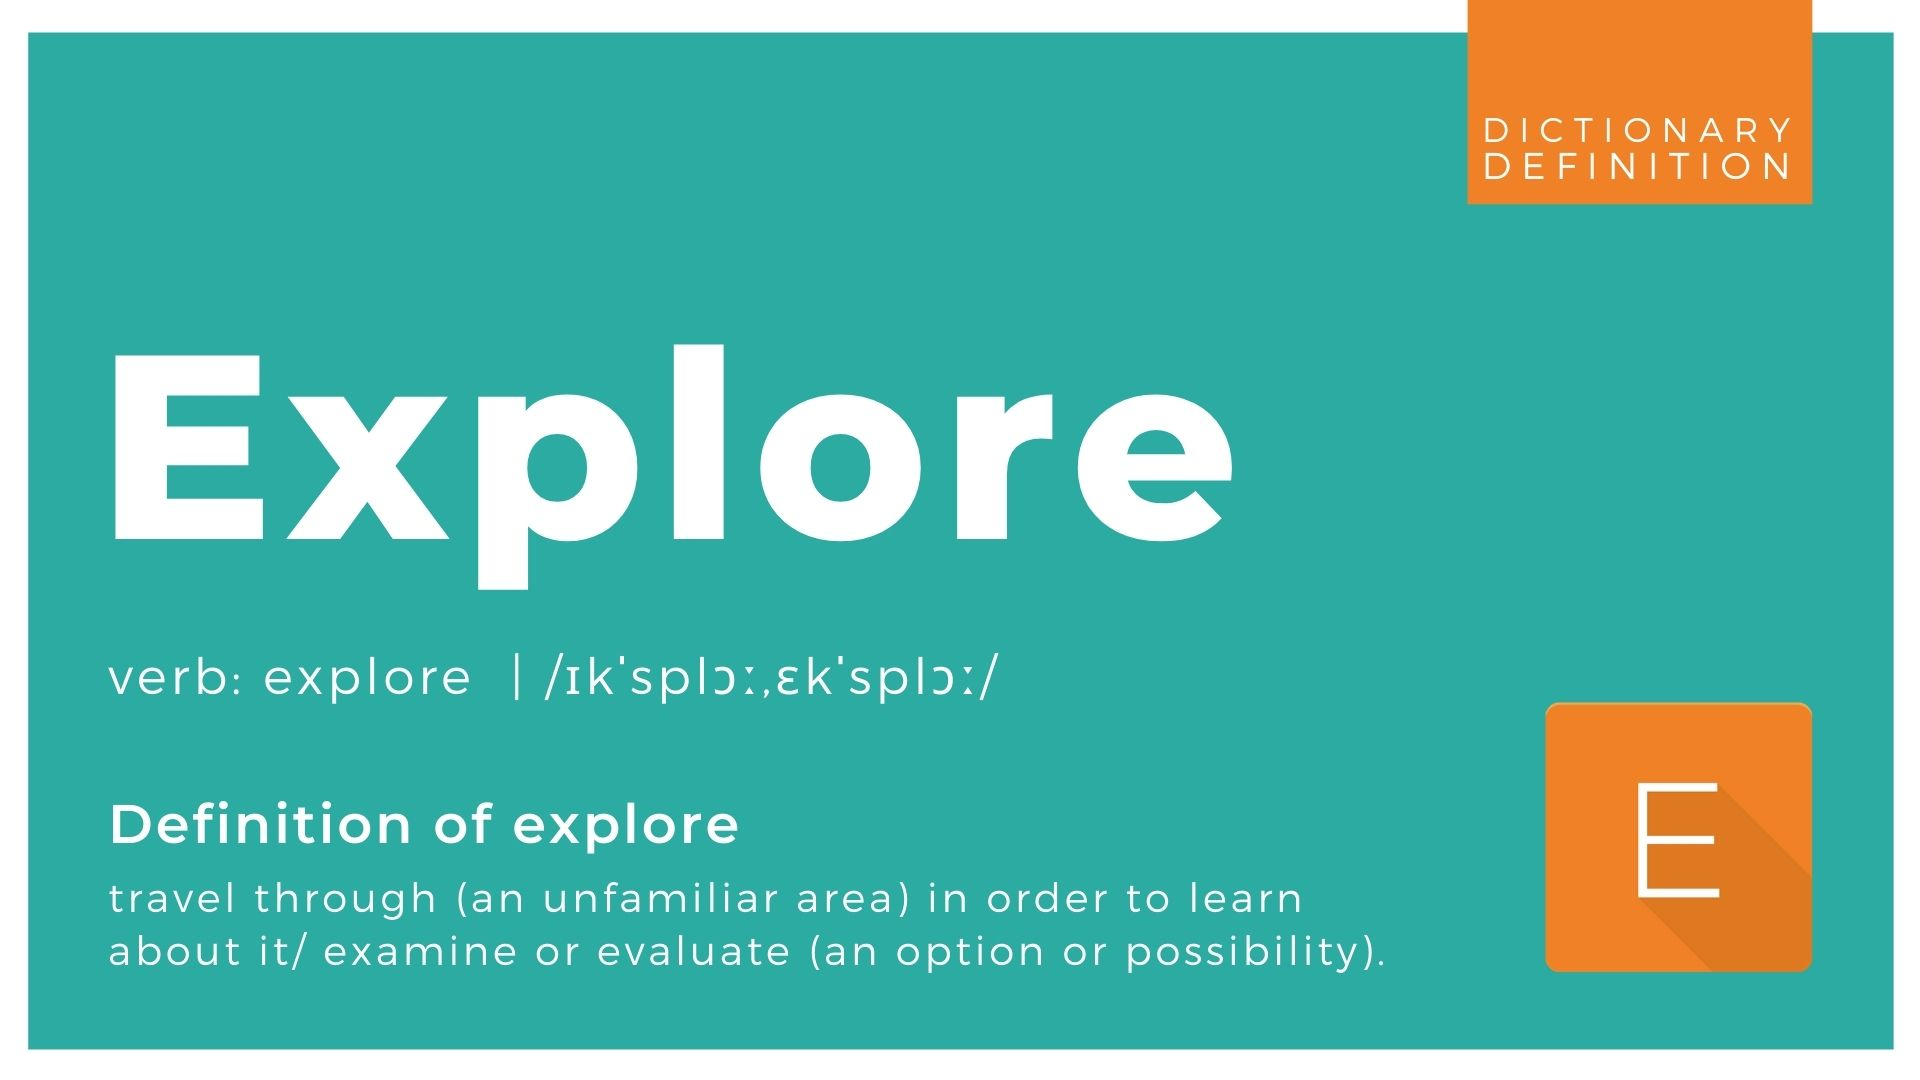 Explore dictionary definition graphic